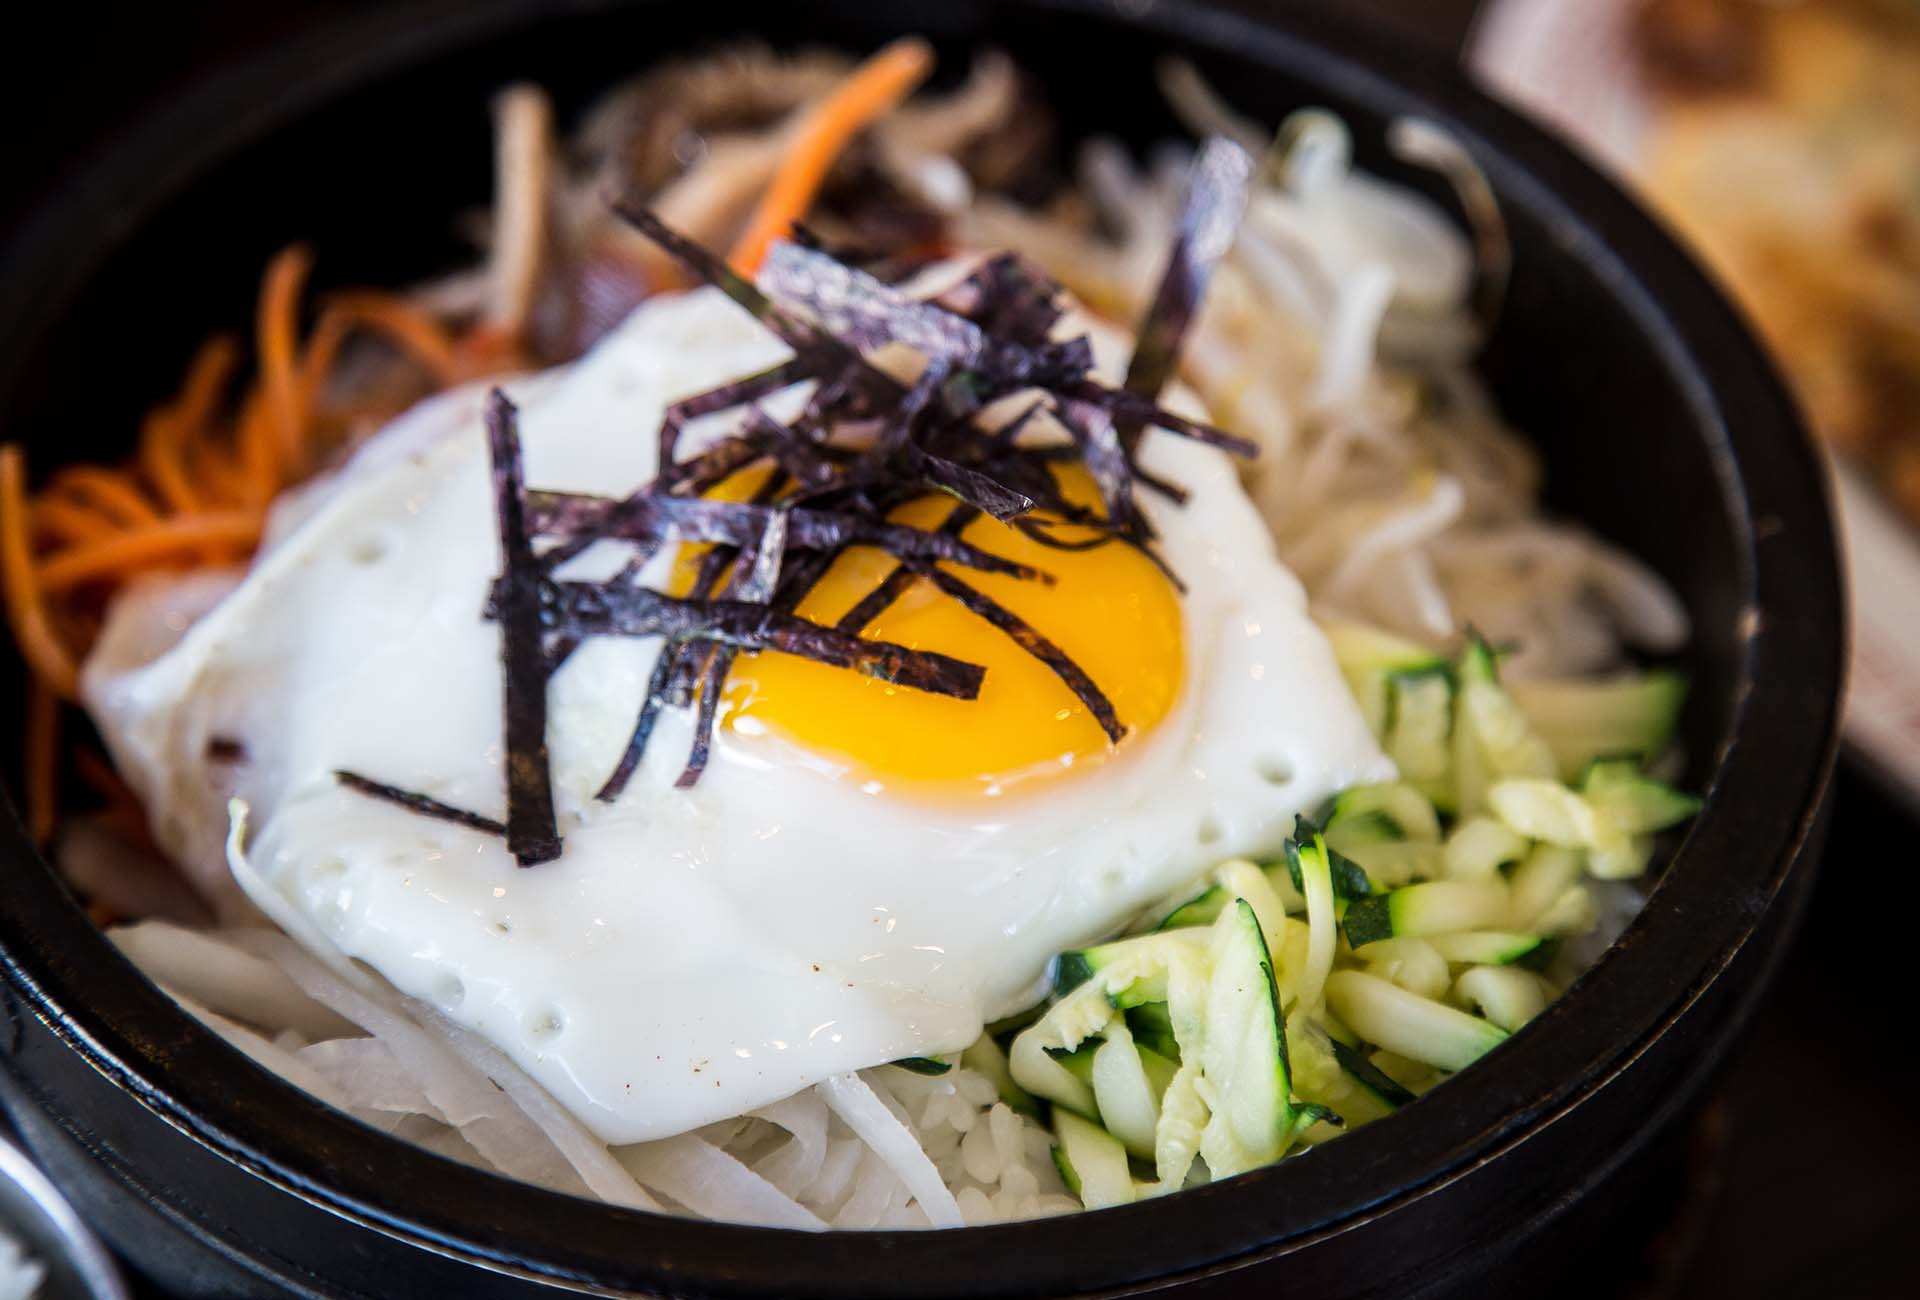 A traditional bibimbap served in a hot stone bowl